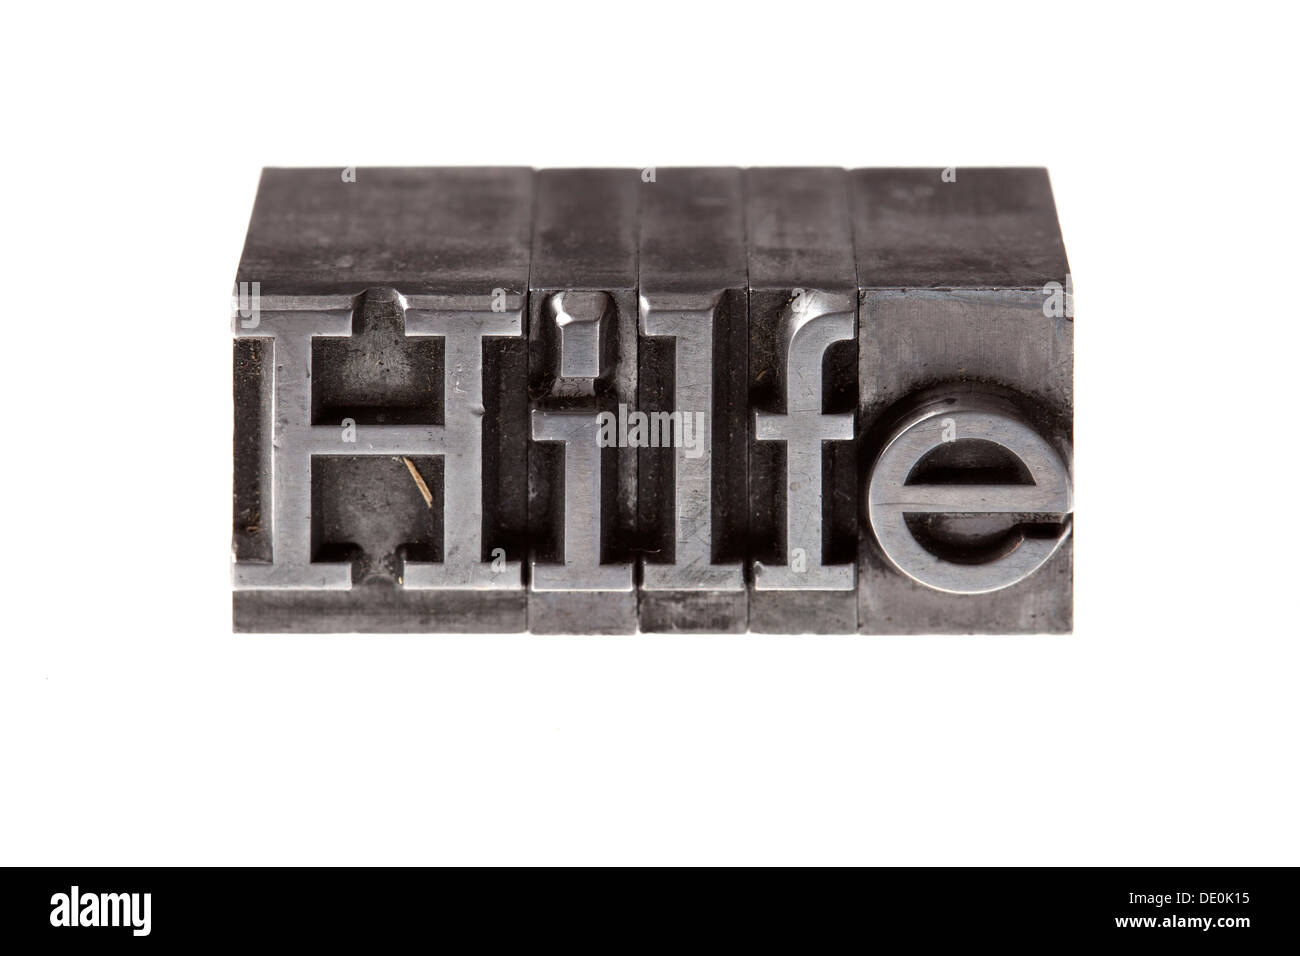 Old lead letters forming the word 'Hilfe', German for help - Stock Image